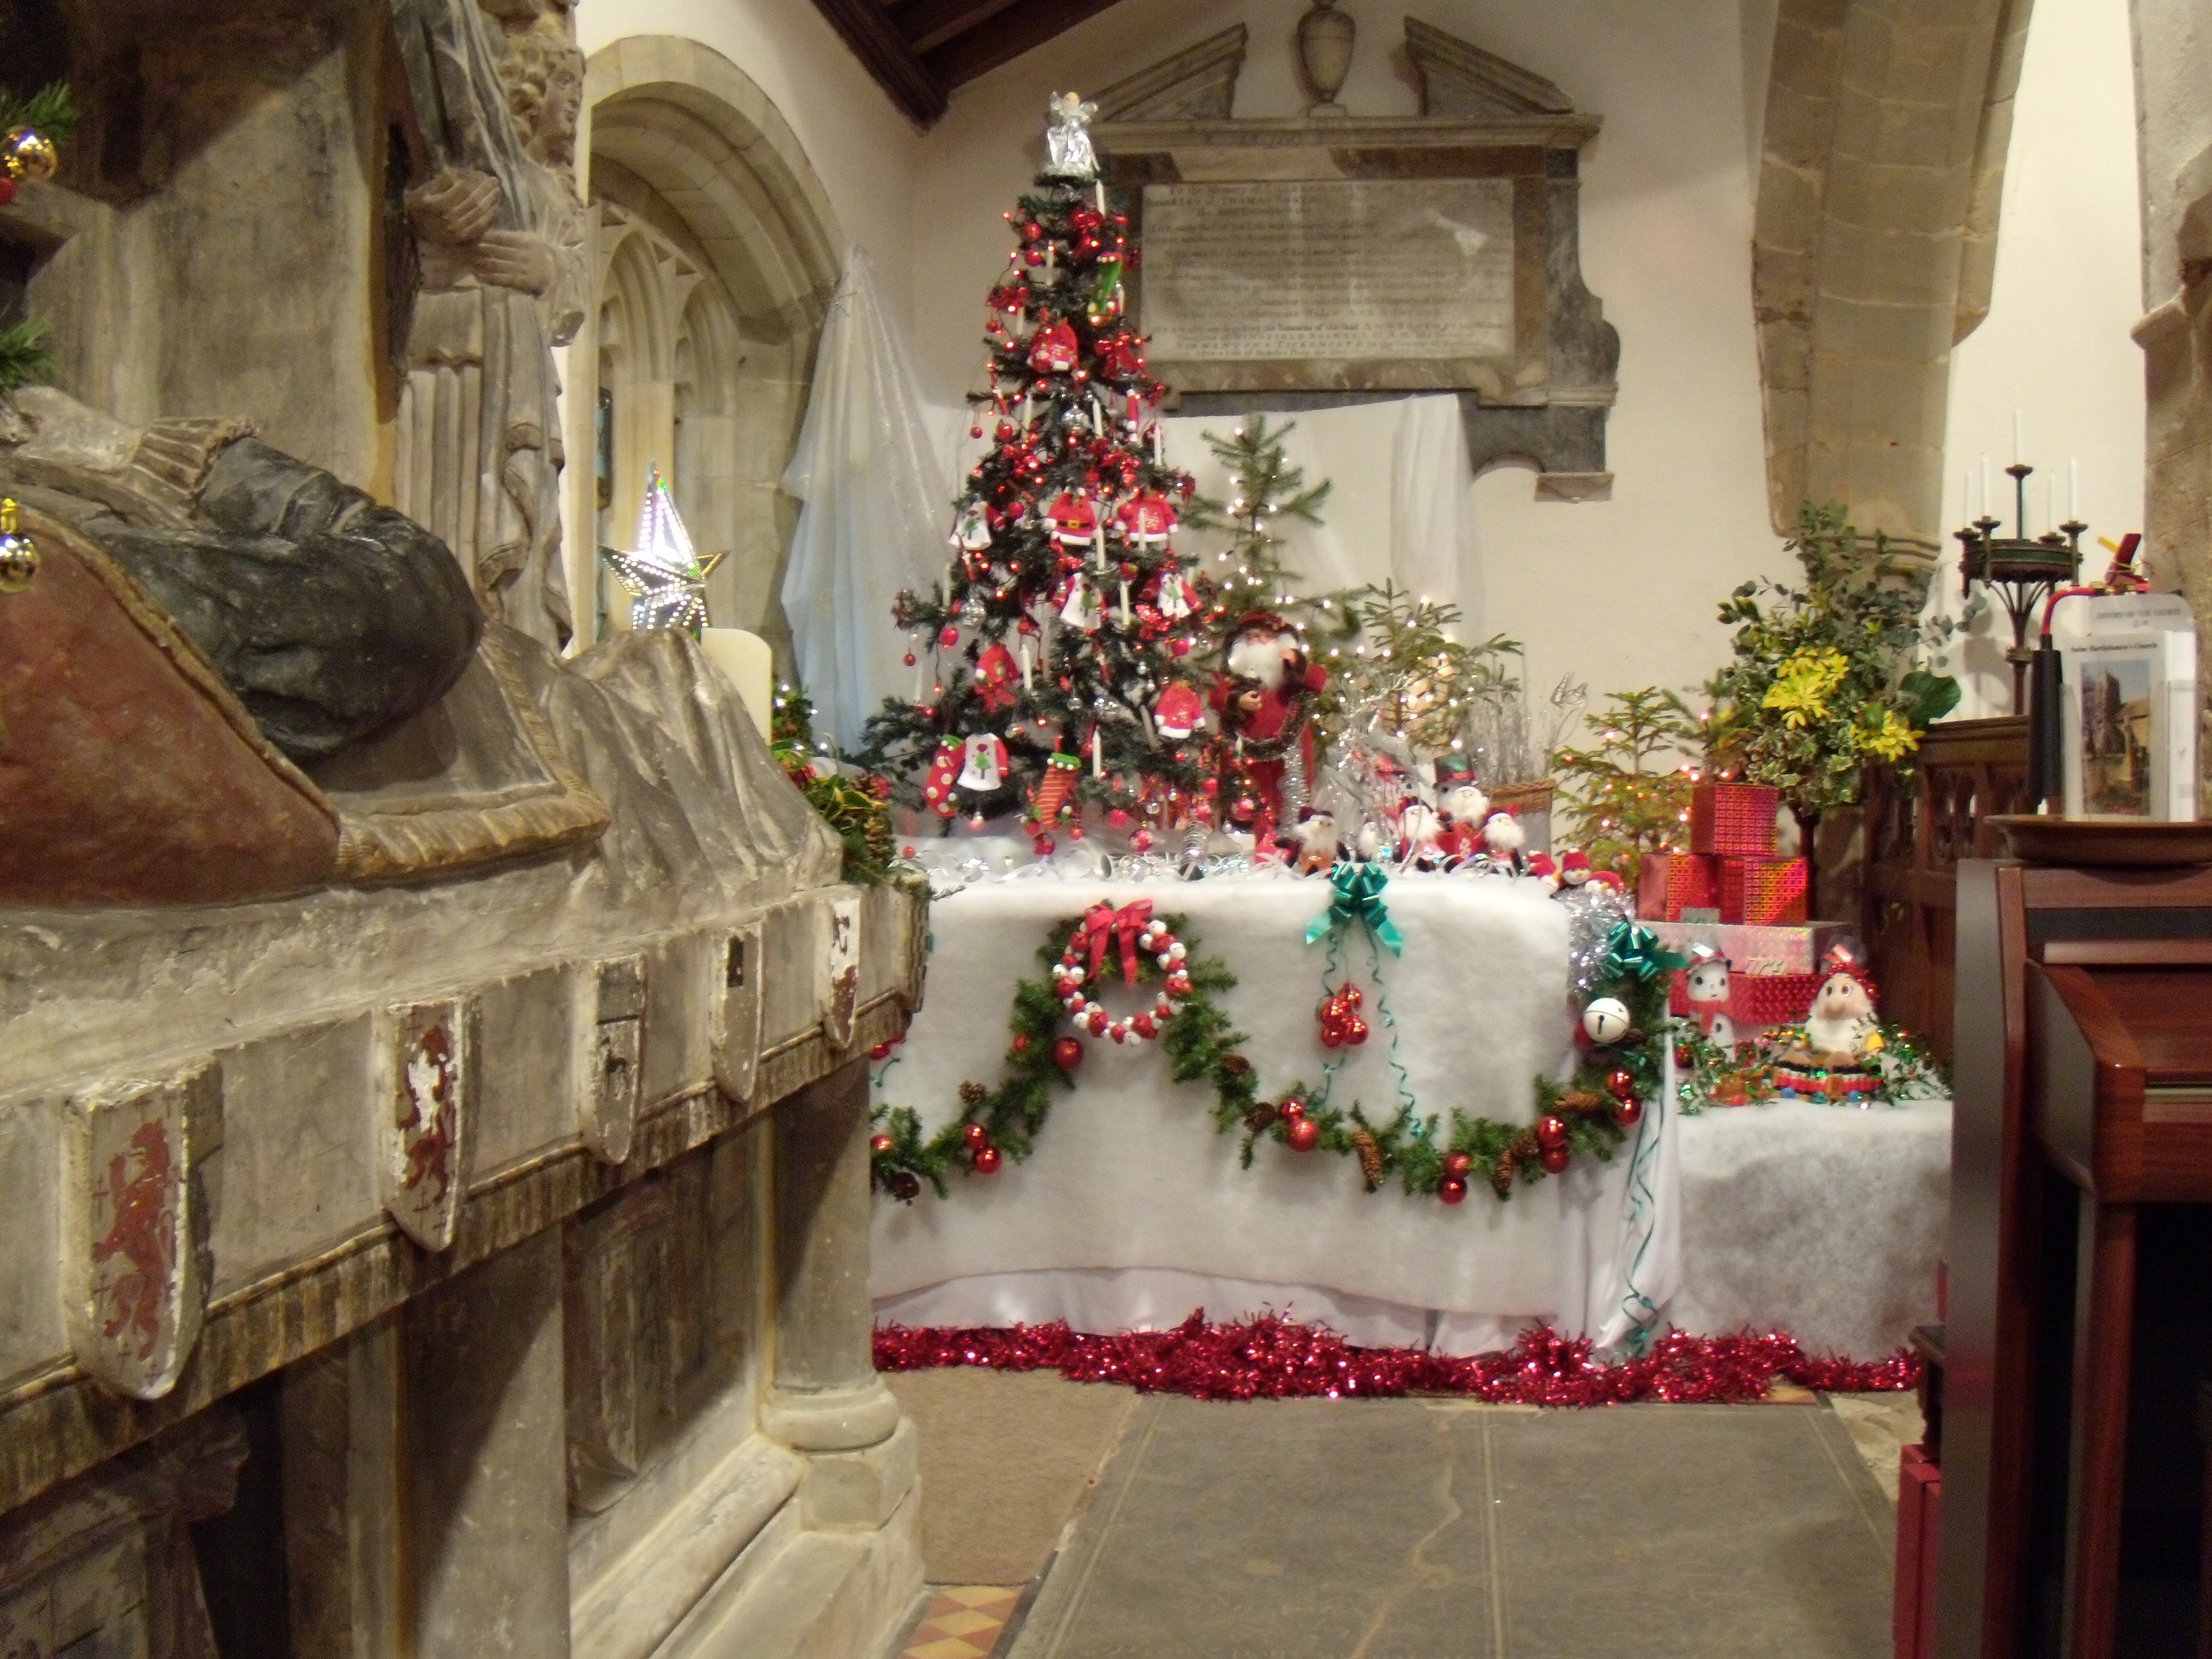 North aisle with Christmas tree by Fawnt tomb